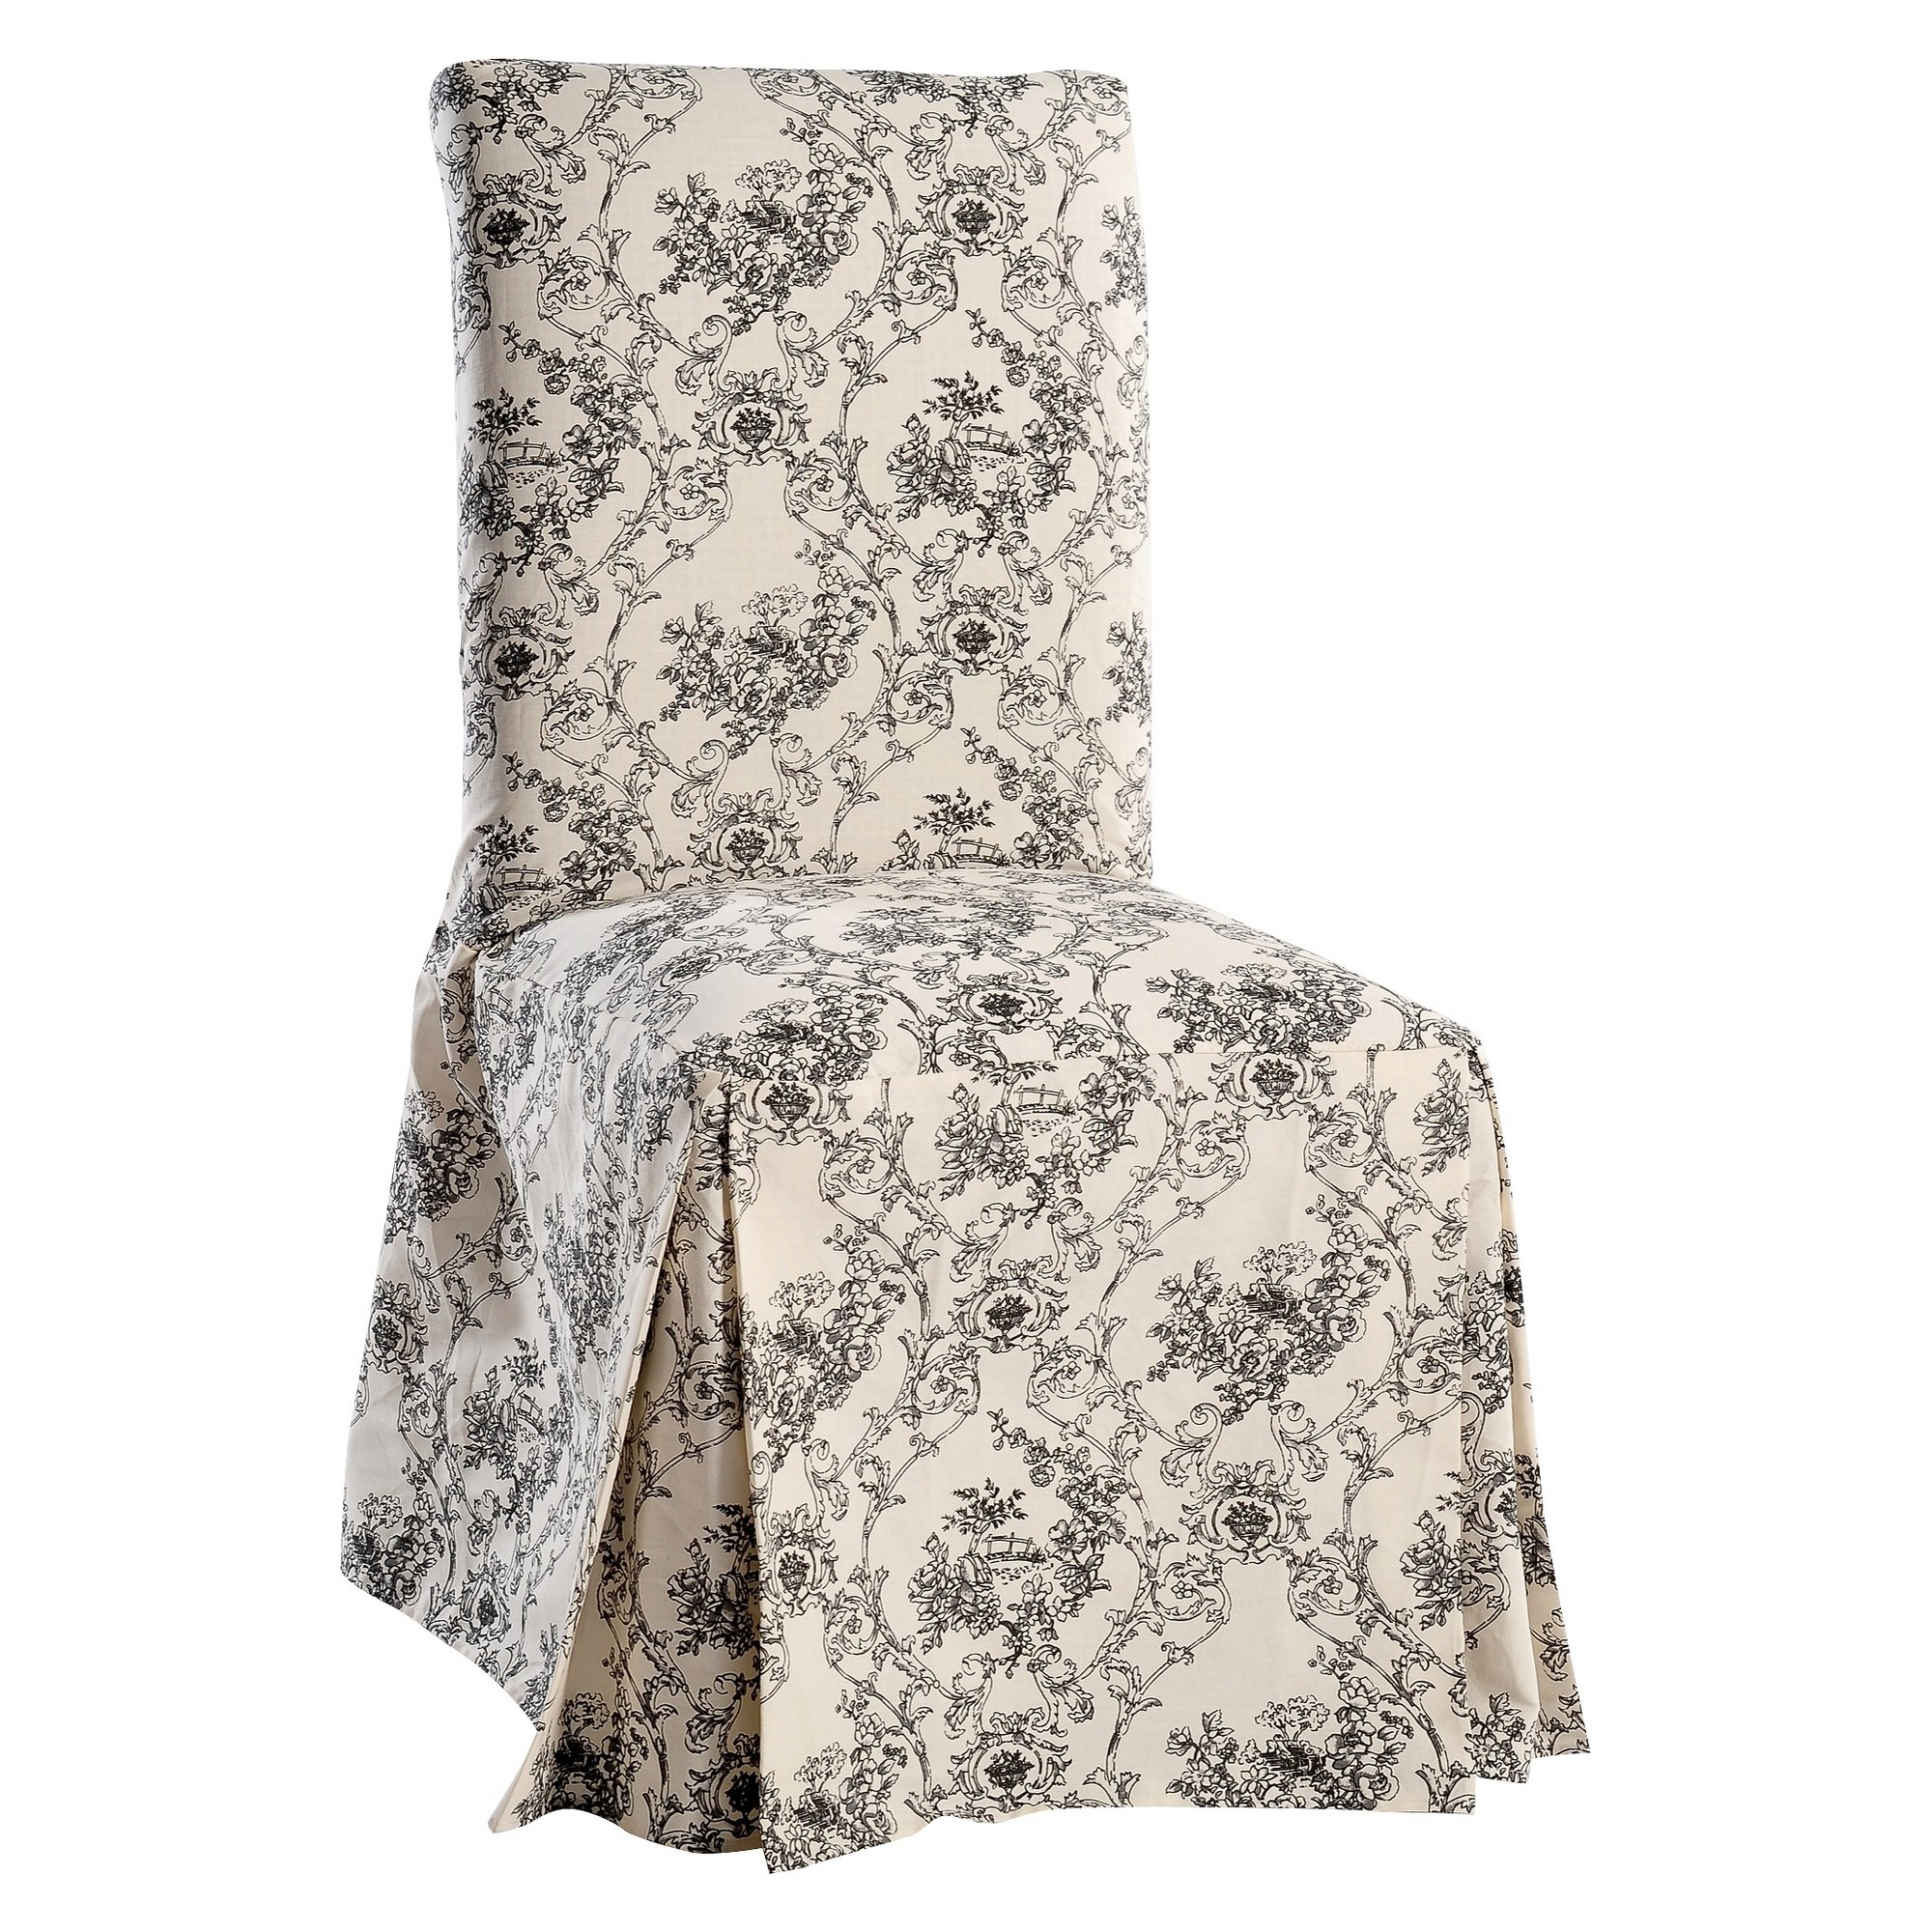 Black/Cream Toile Print Dining Room Chair Sofa Slipcover